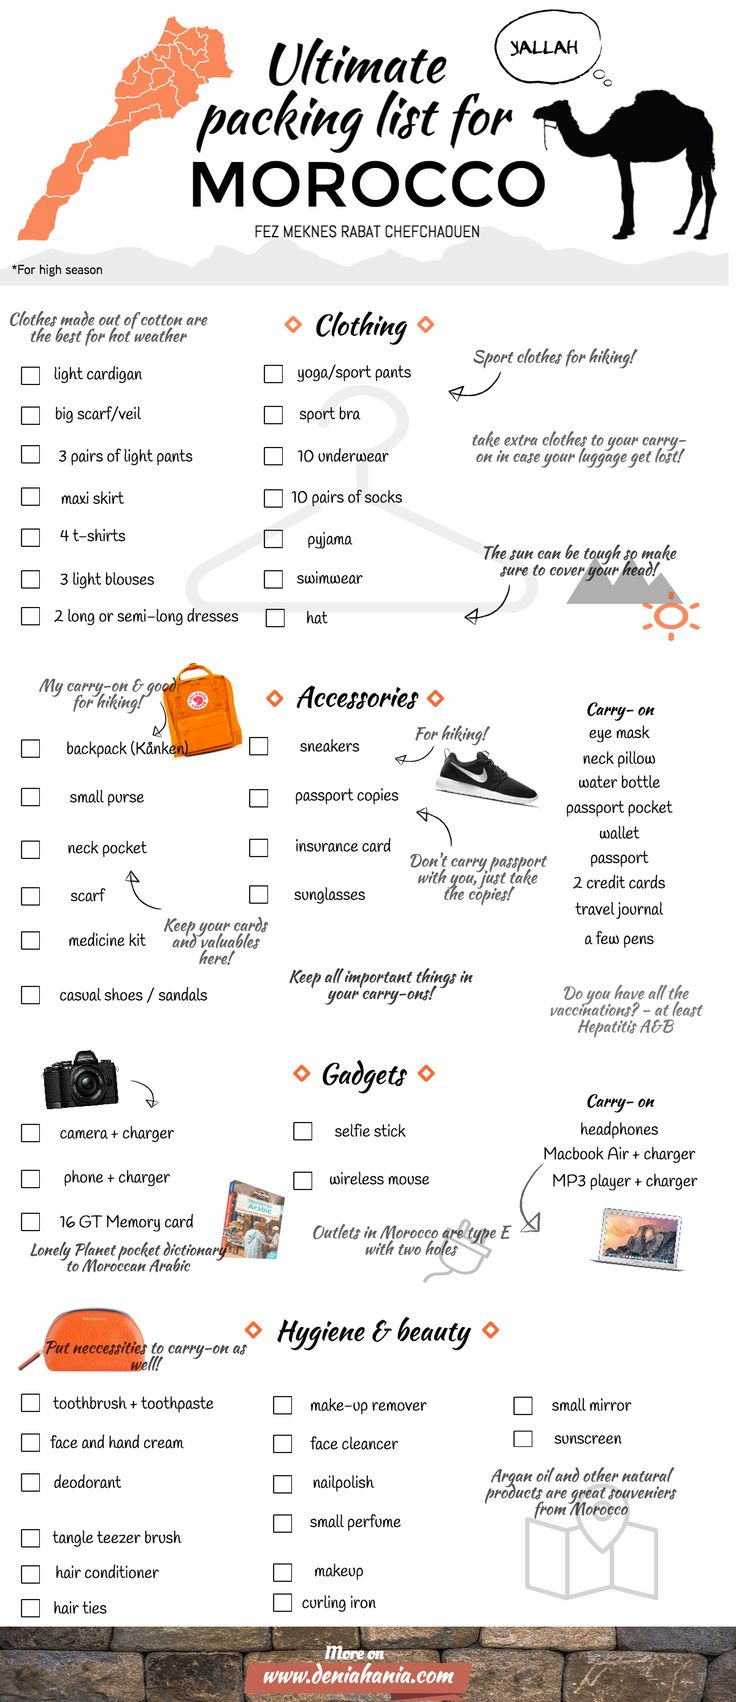 Ultimate packing list for Morocco - Fez, Meknes, Chefchaouen, Rabat   RePinned by : www.powercouplelife.com